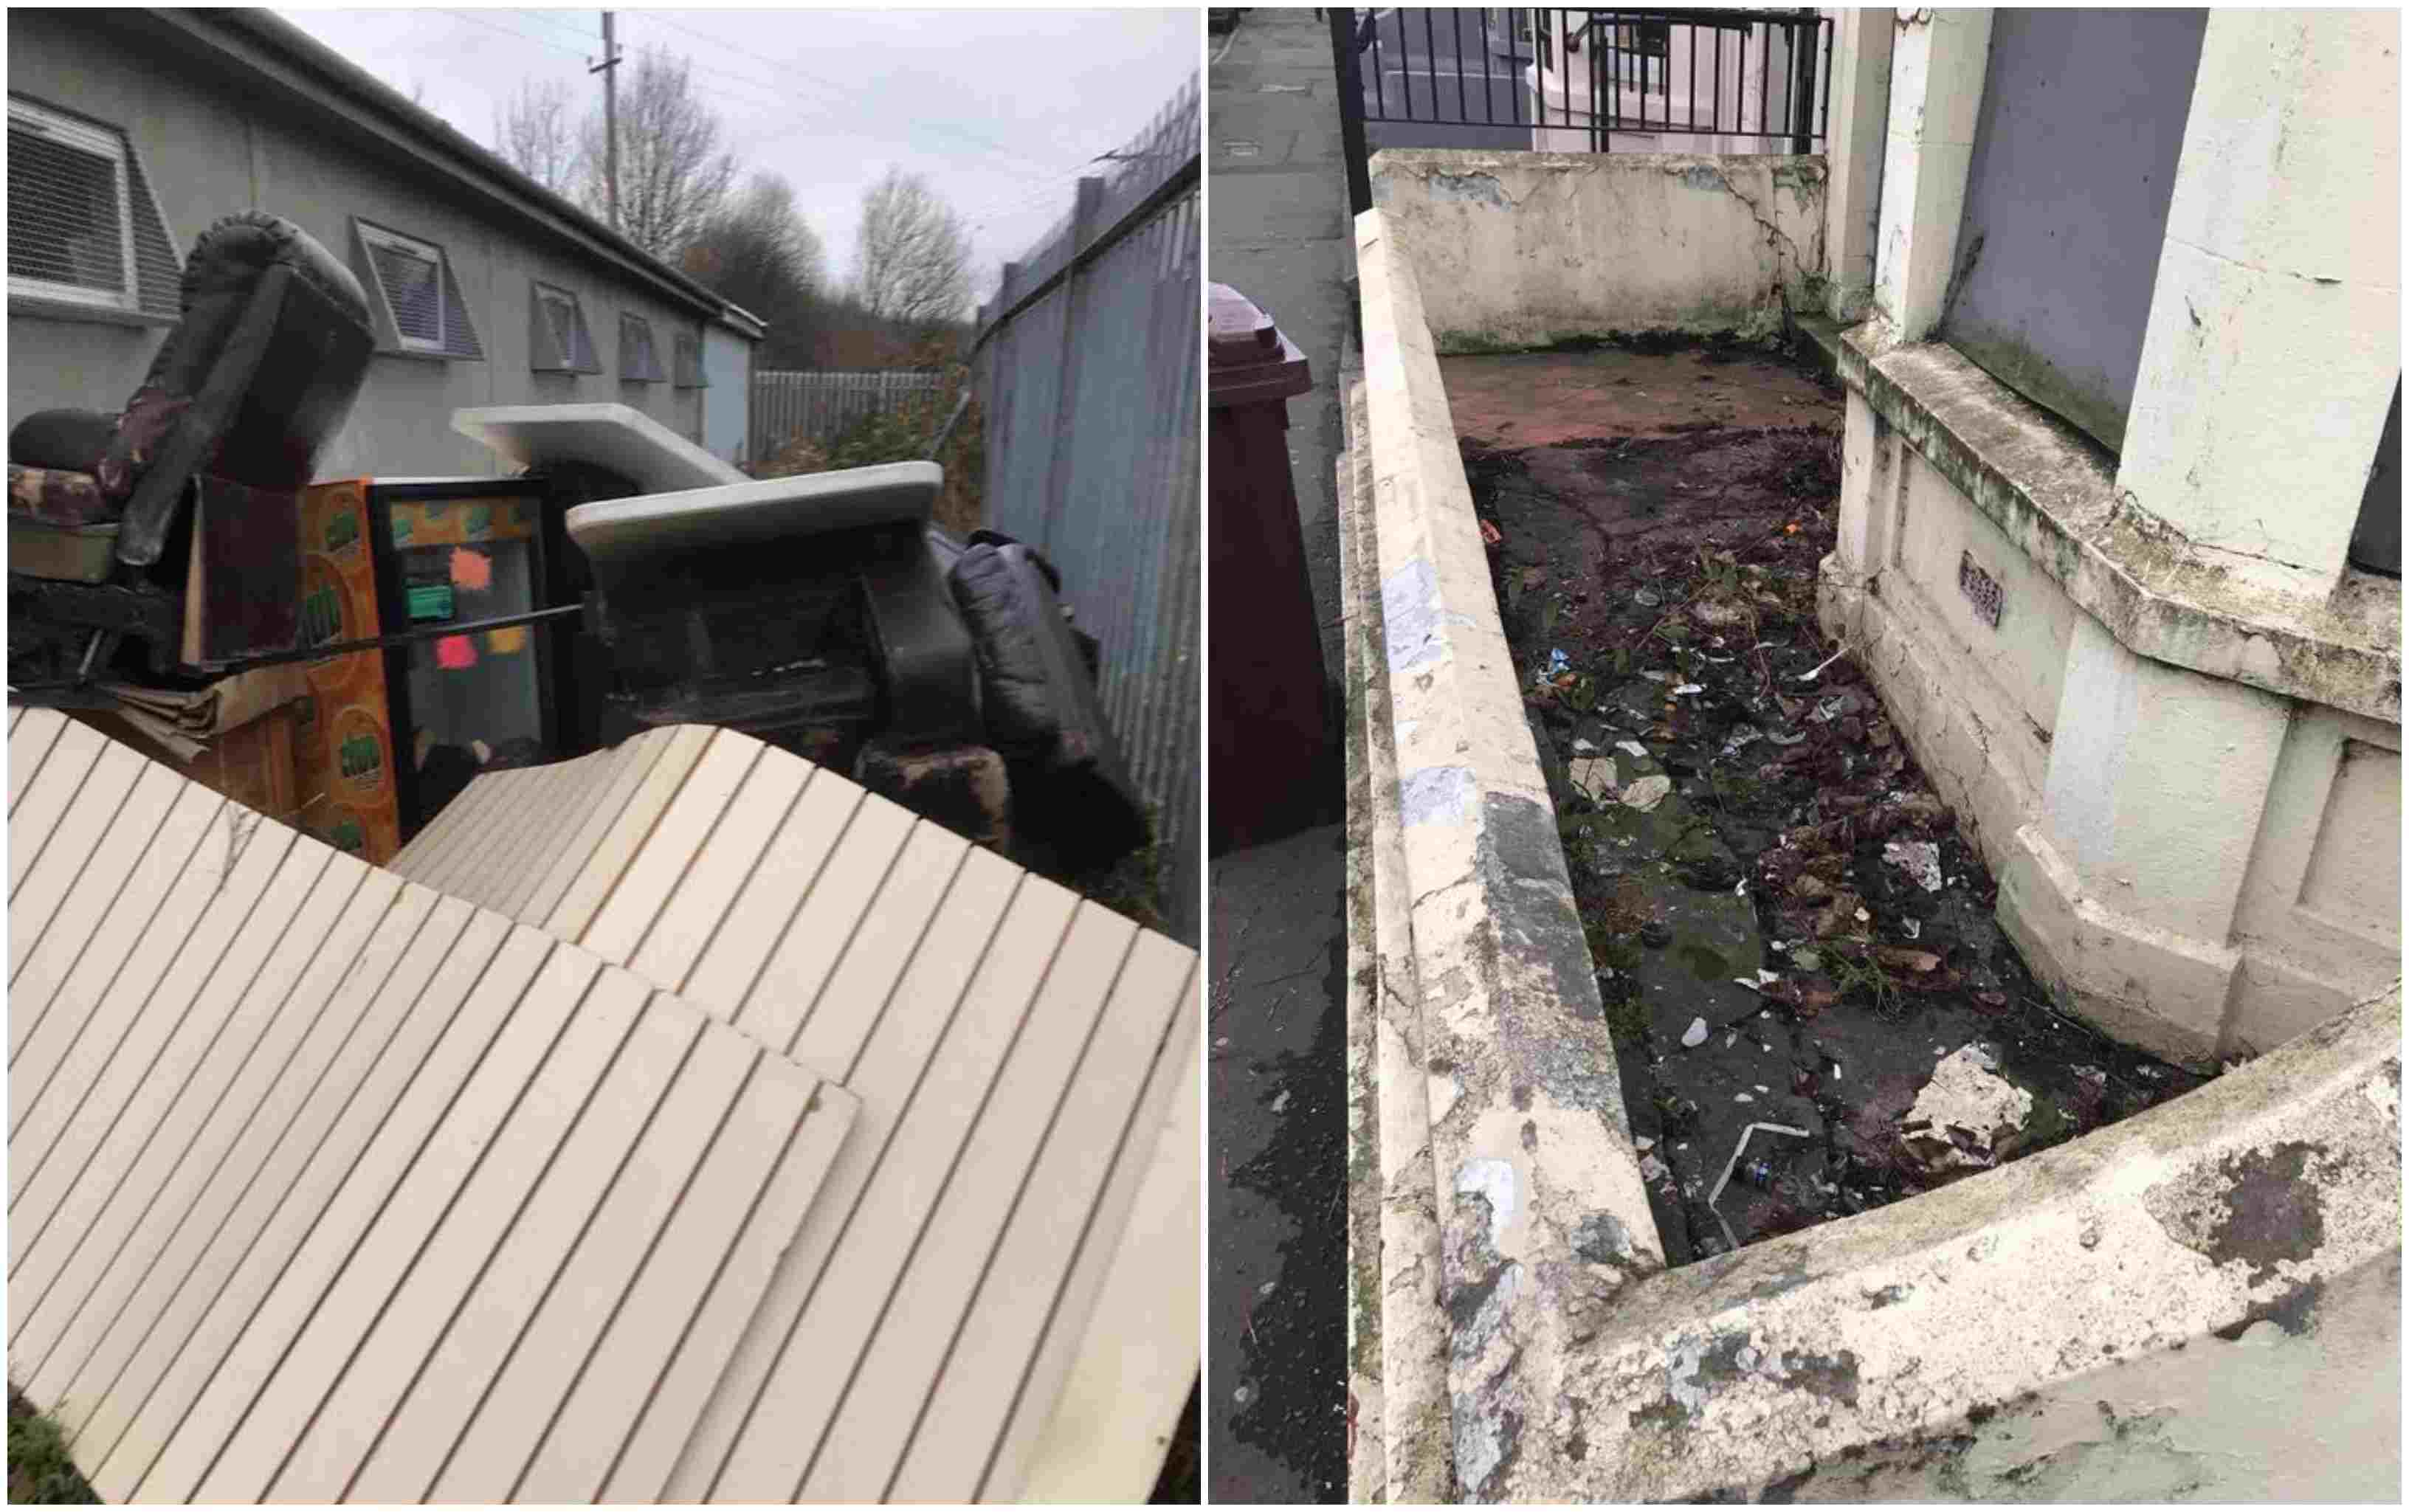 Newry city fly-tipping